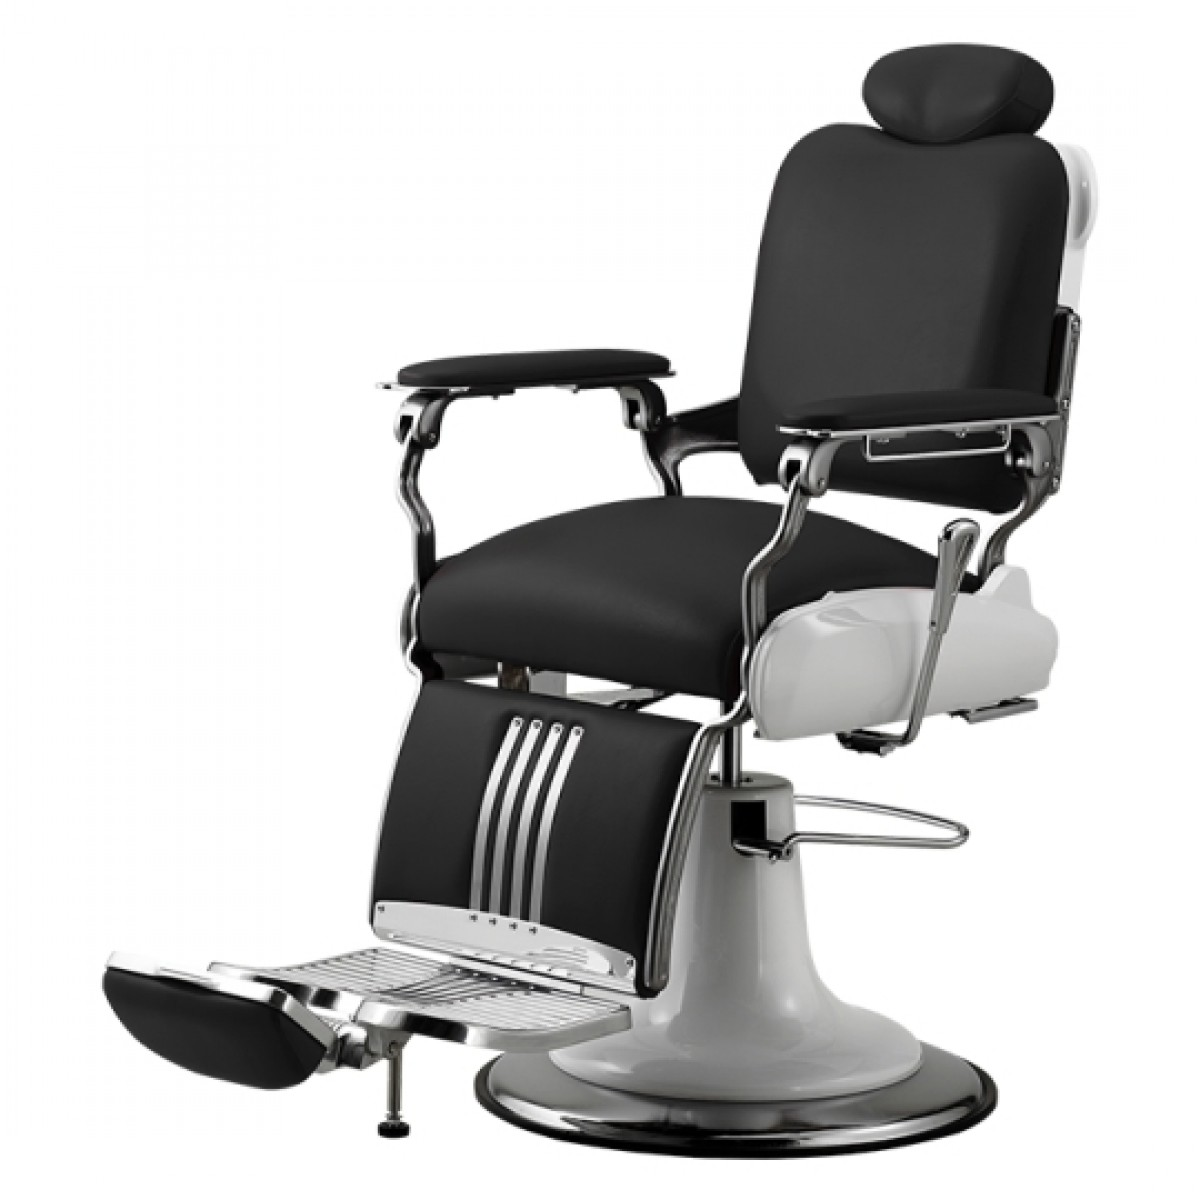 """LEGACY"" Barber Chair by TAKARA BELMONT (Made in Japan)"